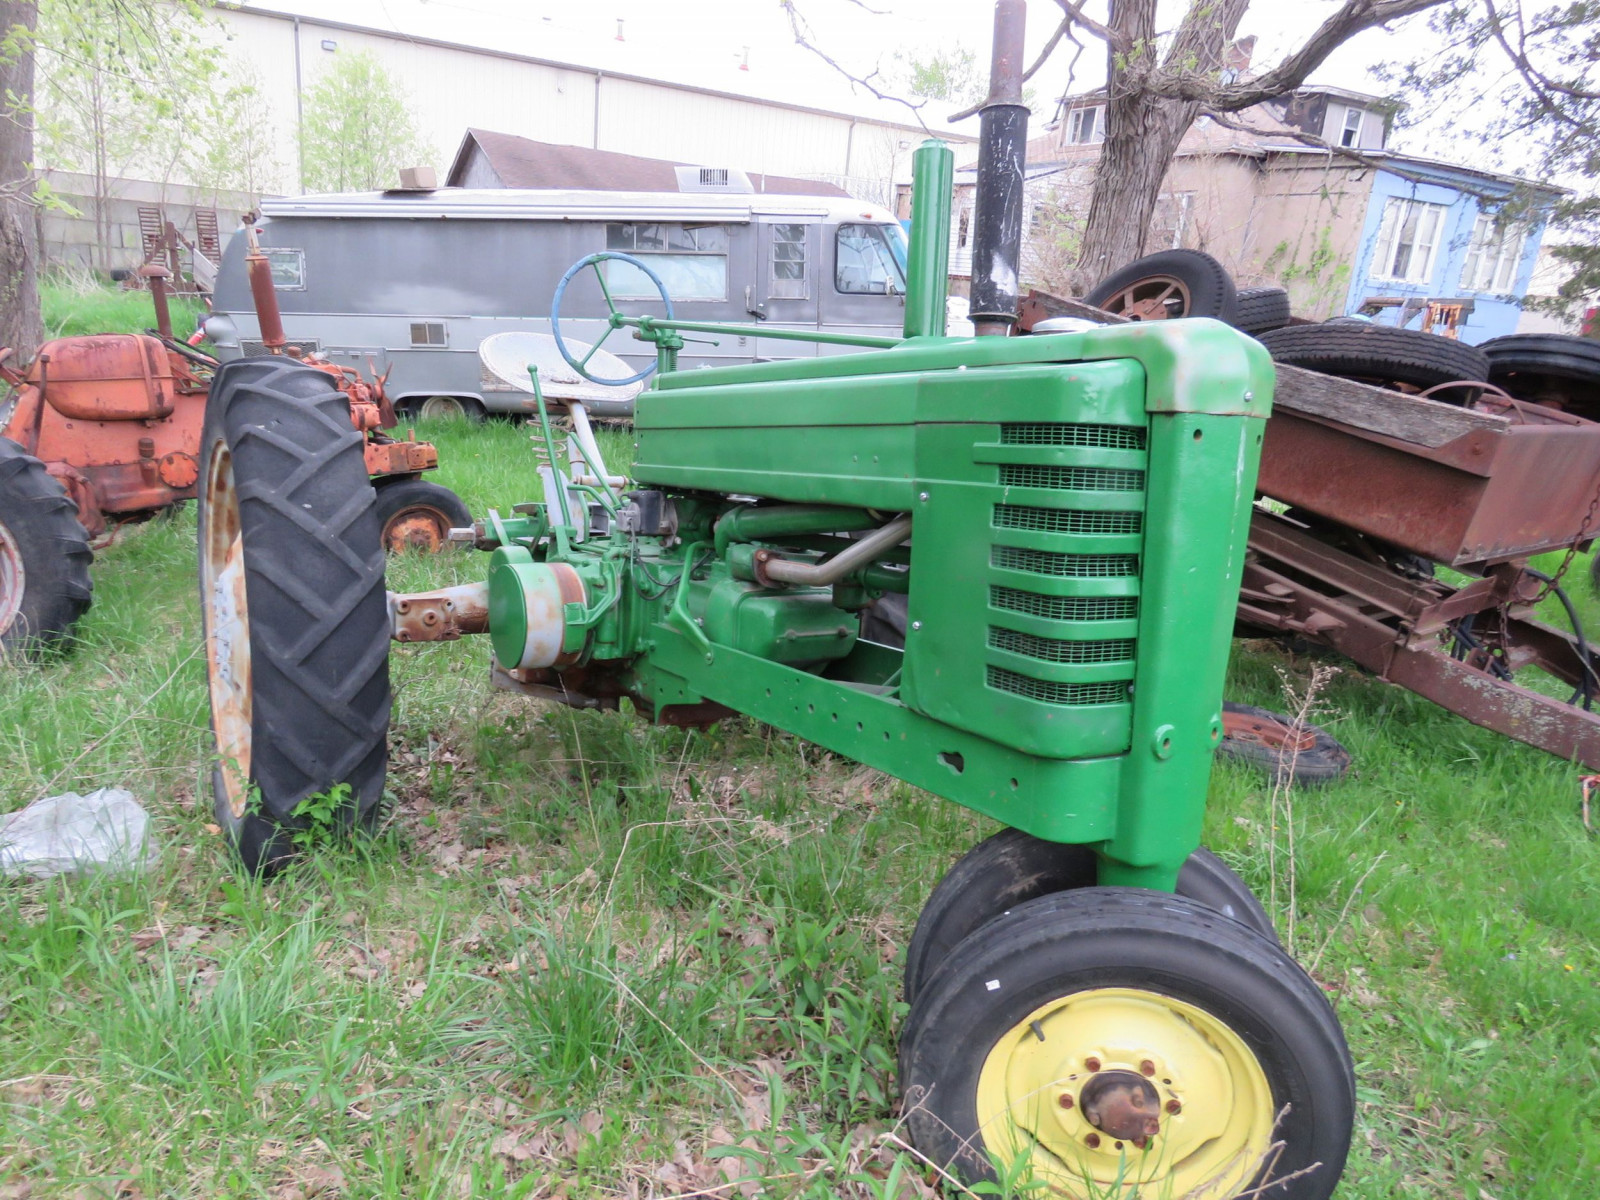 Styled John Deere B Tractor - Image 2